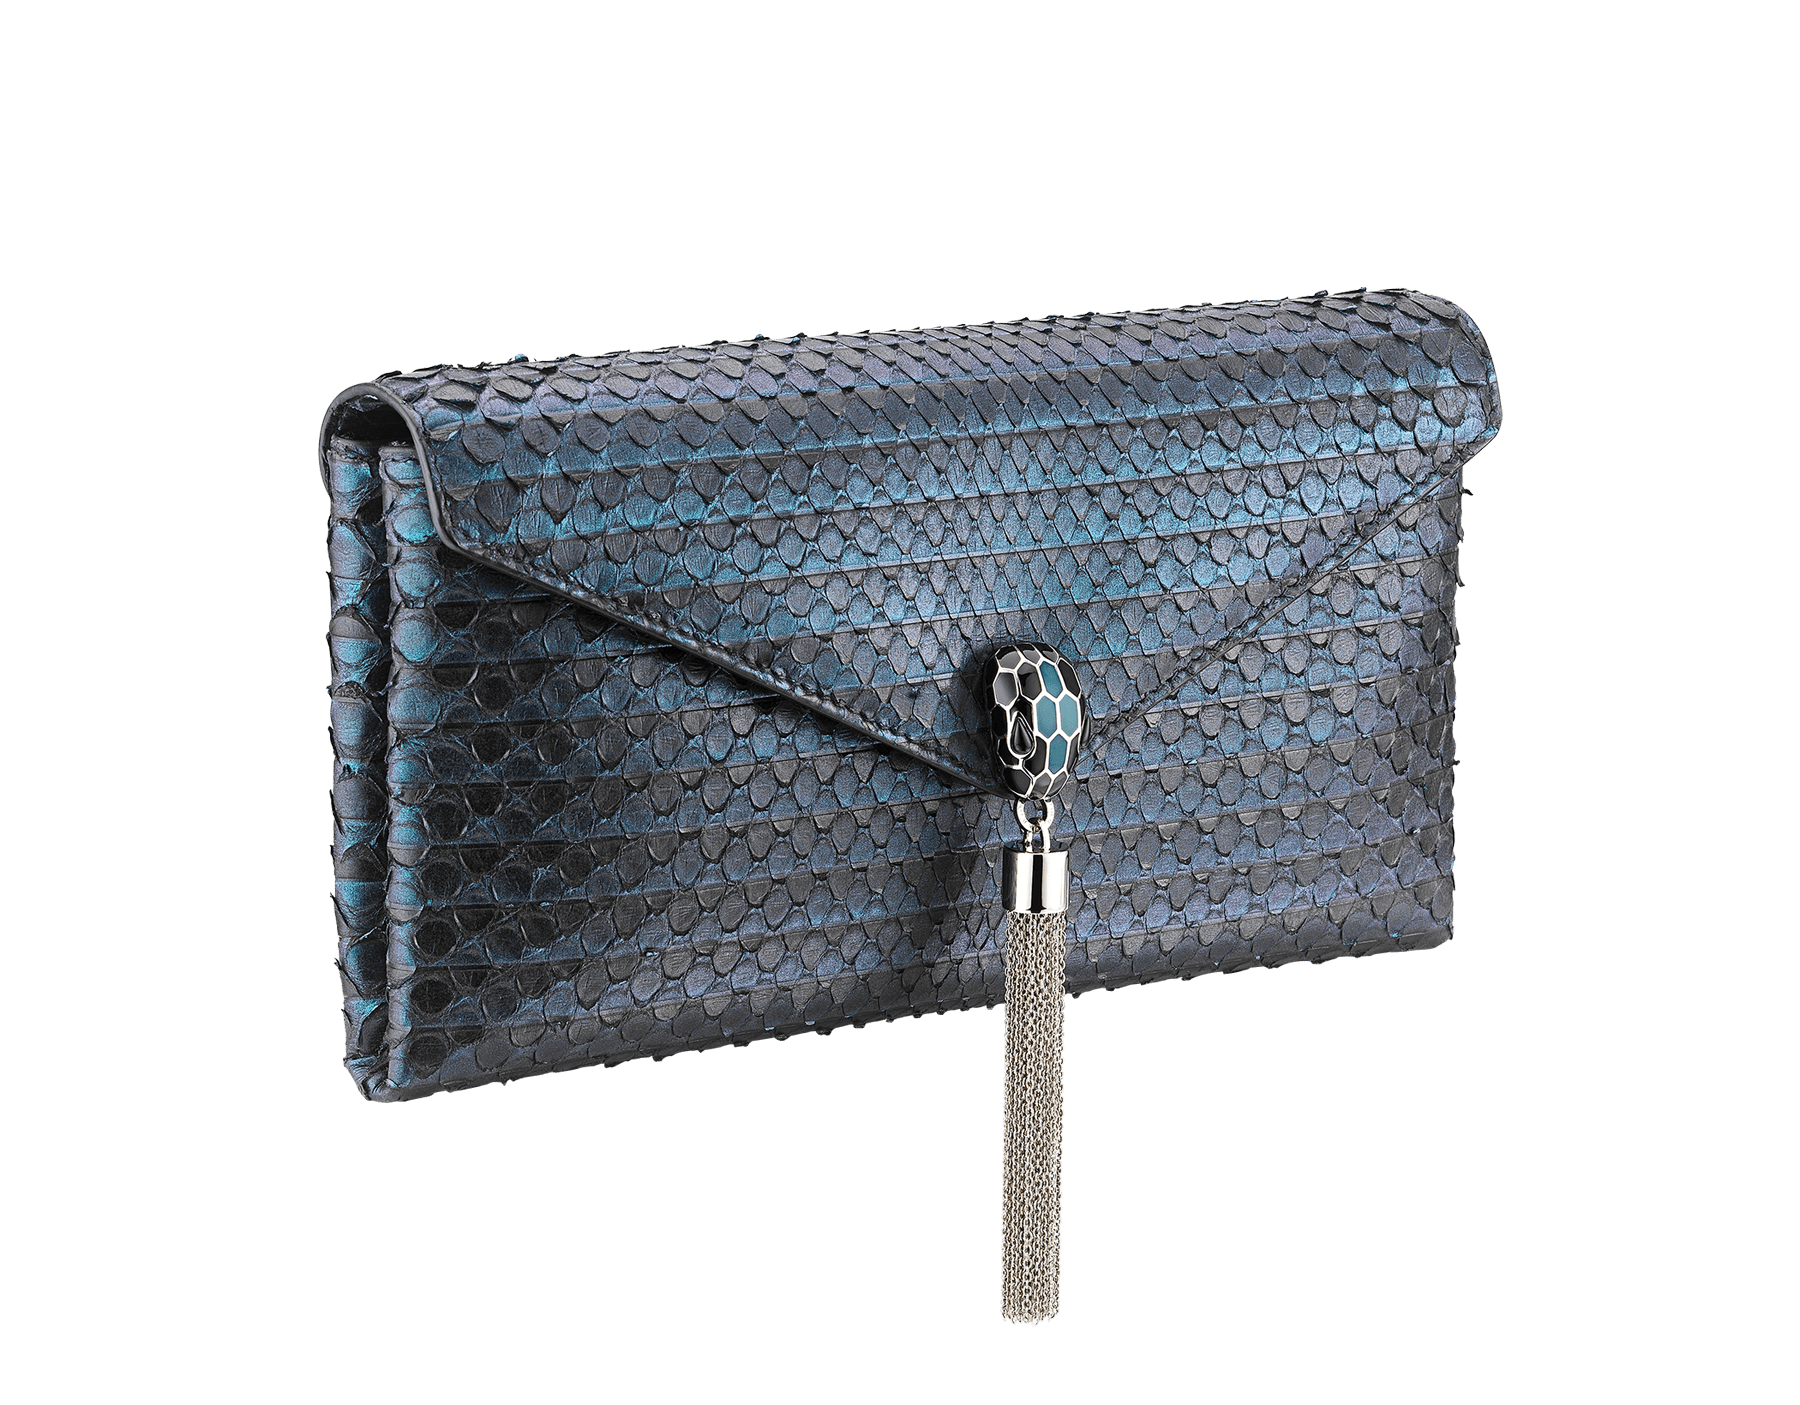 """Serpenti"" evening clutch bag in deep jade Plissé python skin. Iconic snakehead stud closure with tassel in palladium plated brass enriched with black and deep jade enamel and black onyx eyes. 288168 image 2"